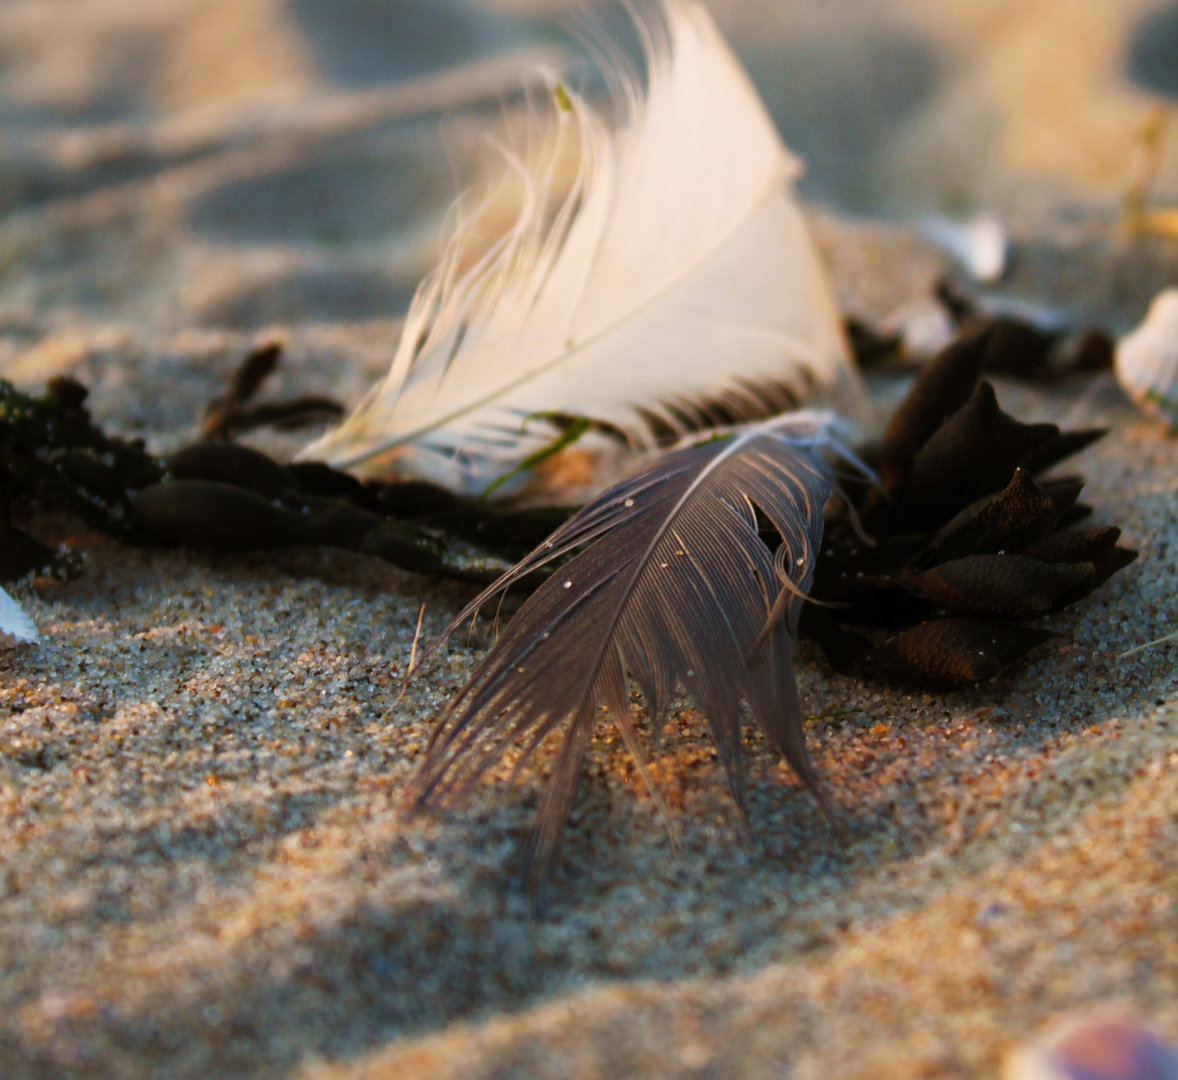 ....the White and Grey Feather...